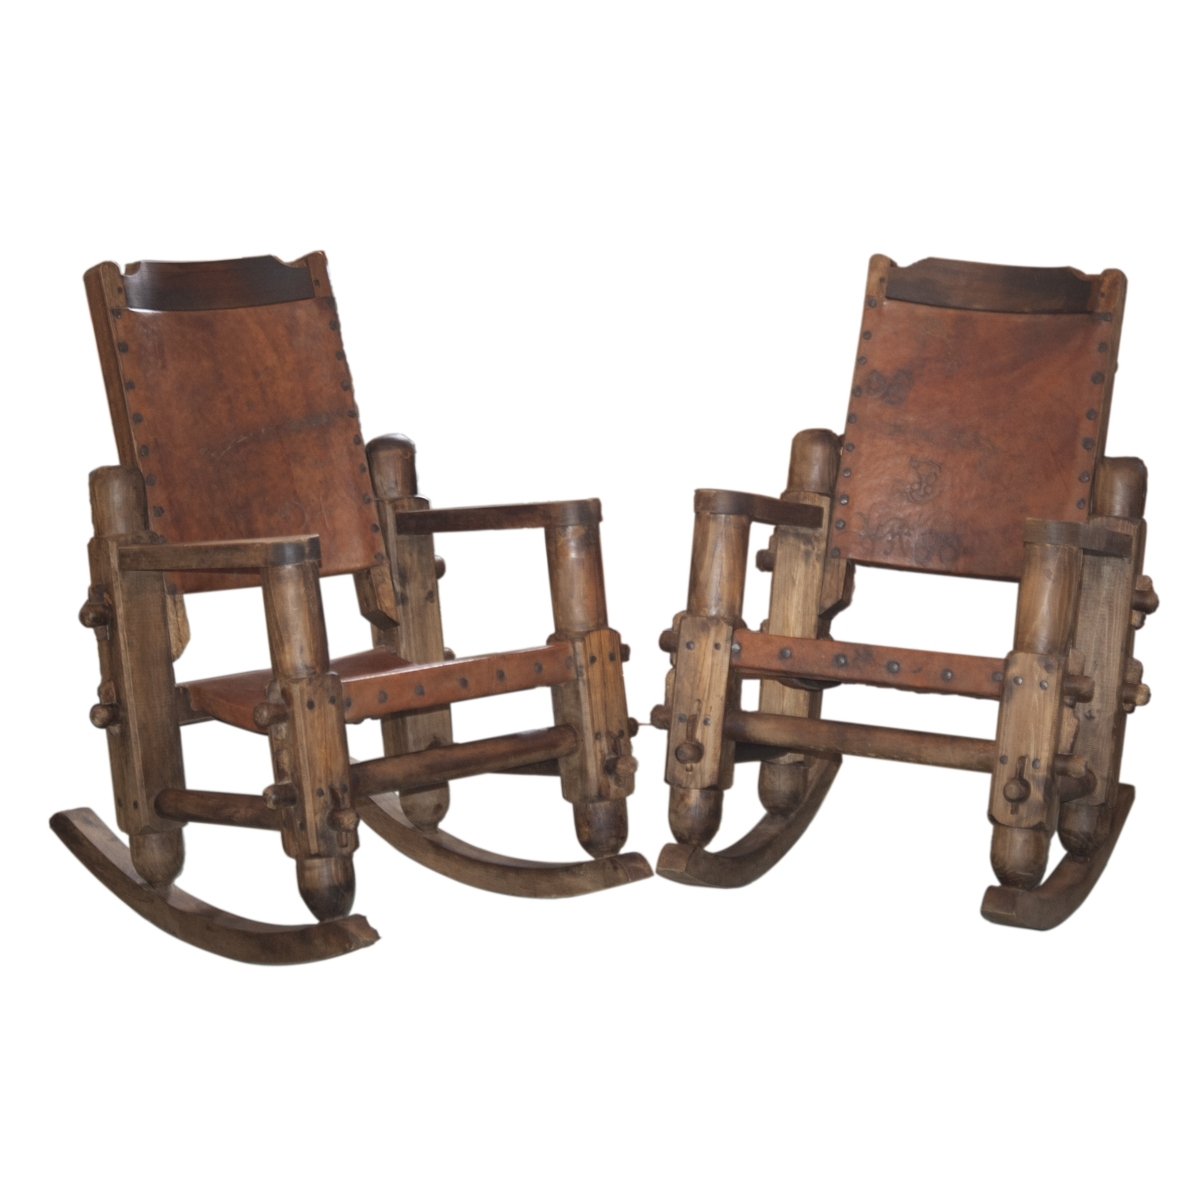 Famous Vintage Outdoor Rocking Chairs Intended For Lot #260: Vintage Mexican Wooden & Leather Rocking Chairs (View 4 of 20)